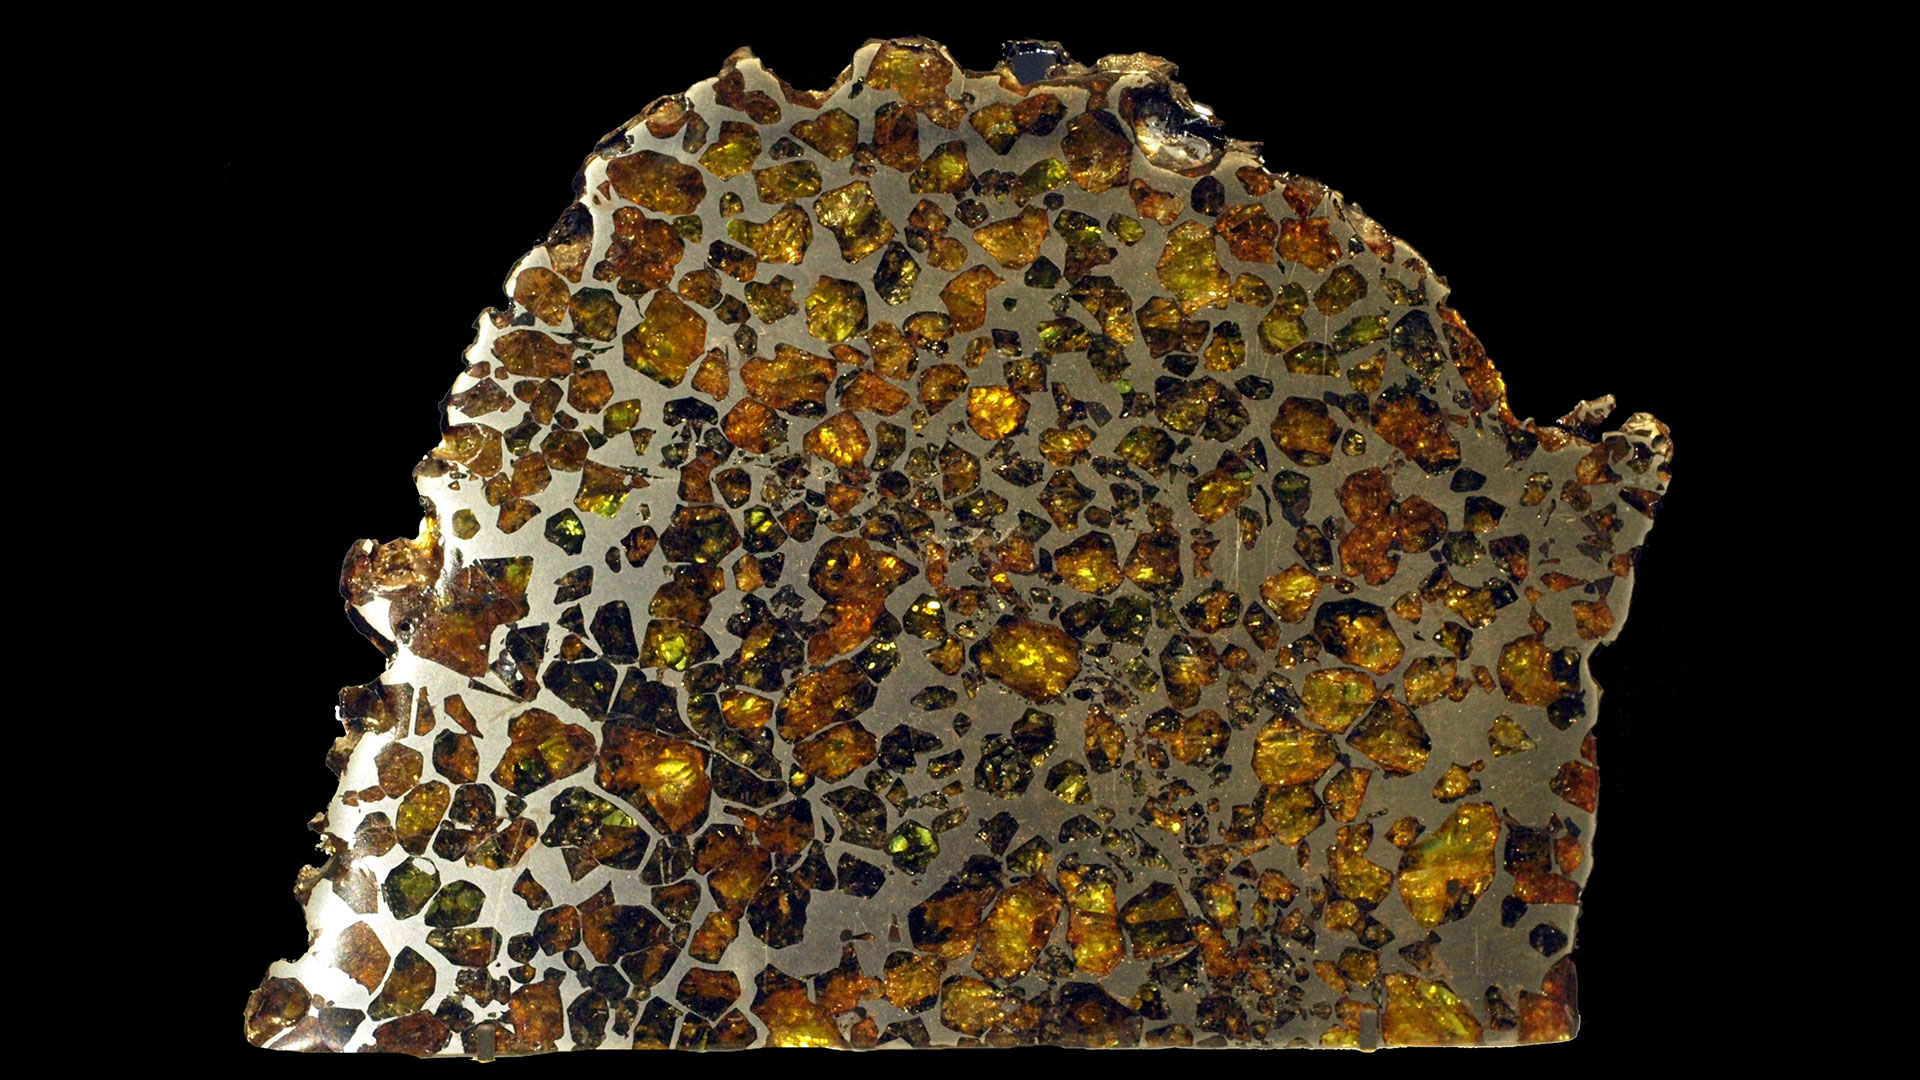 Pallasite Meteorite - Original Photograph by Captmondo